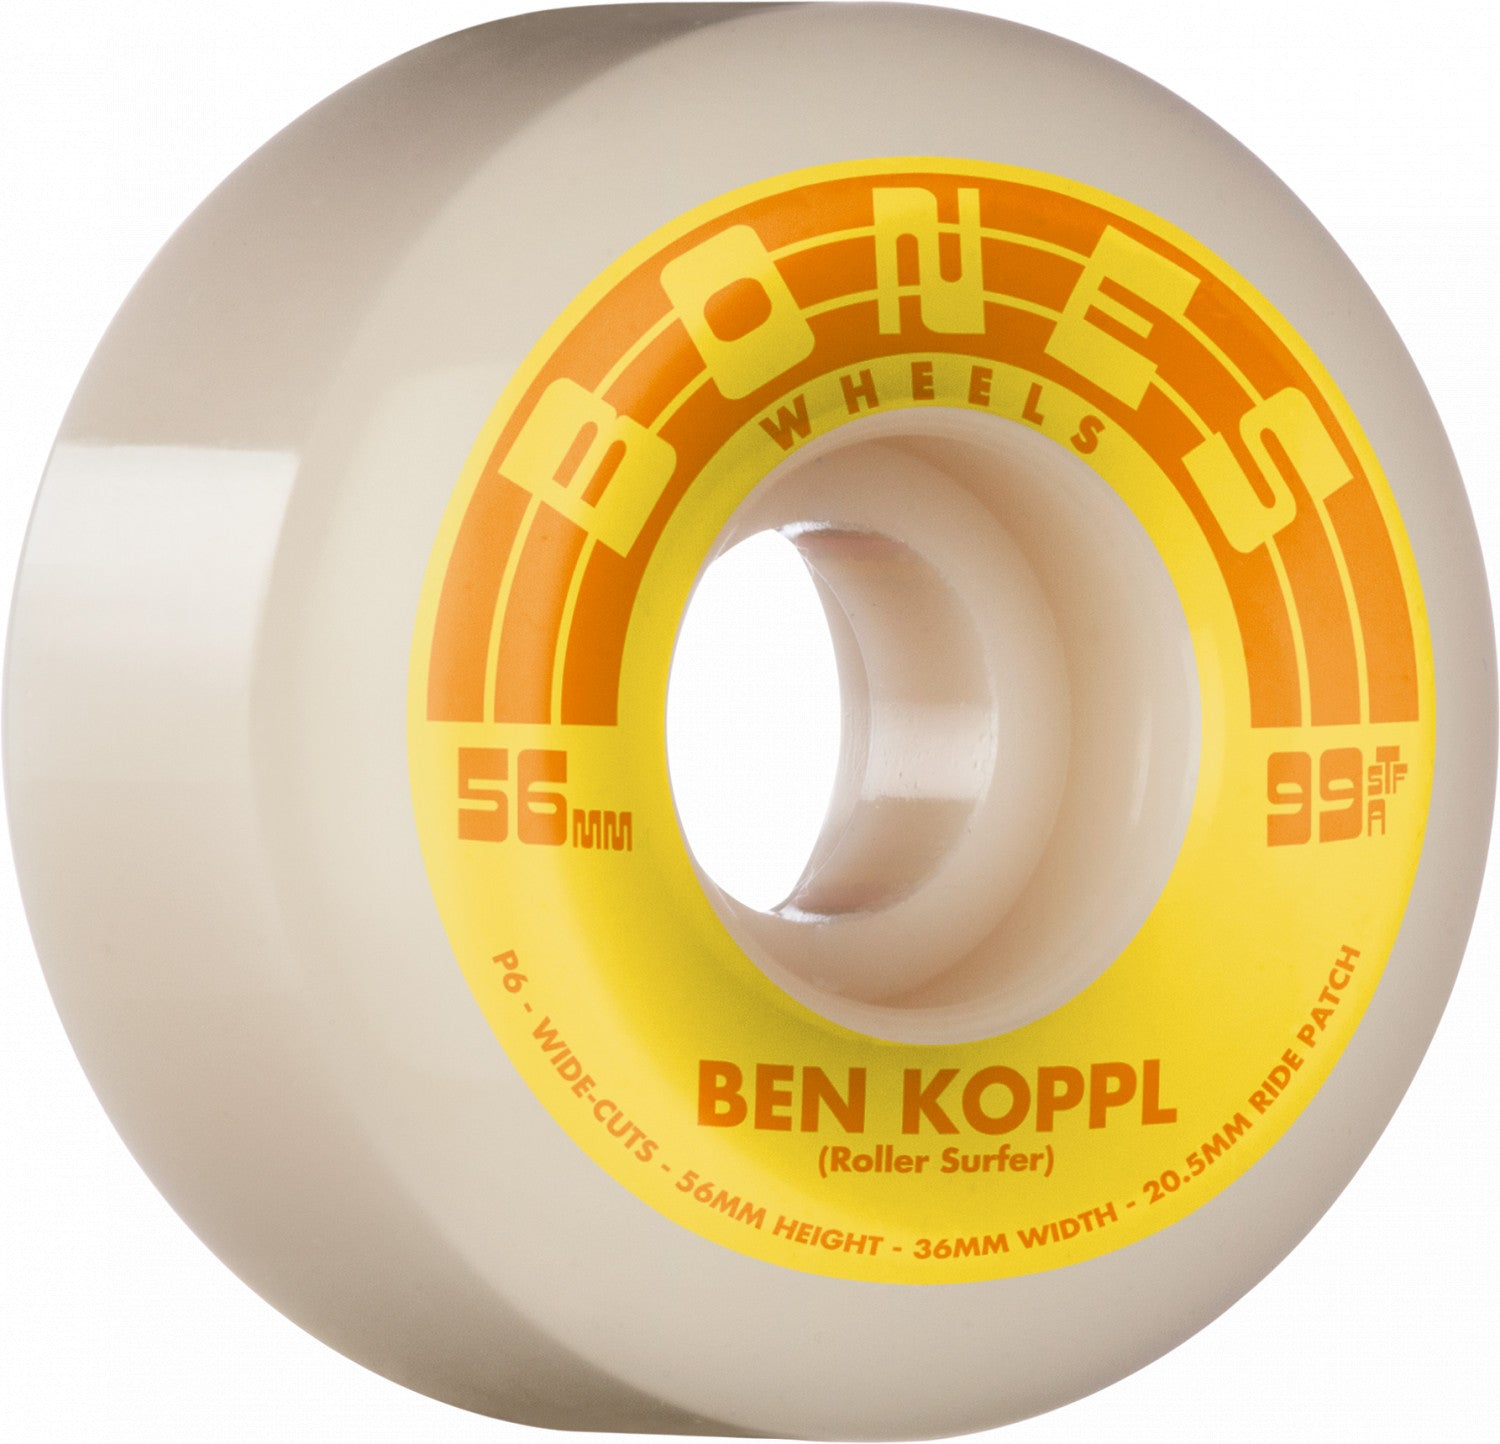 Bones Wheels Ben Koppl Rollersurfer 56mm Widecut 99a